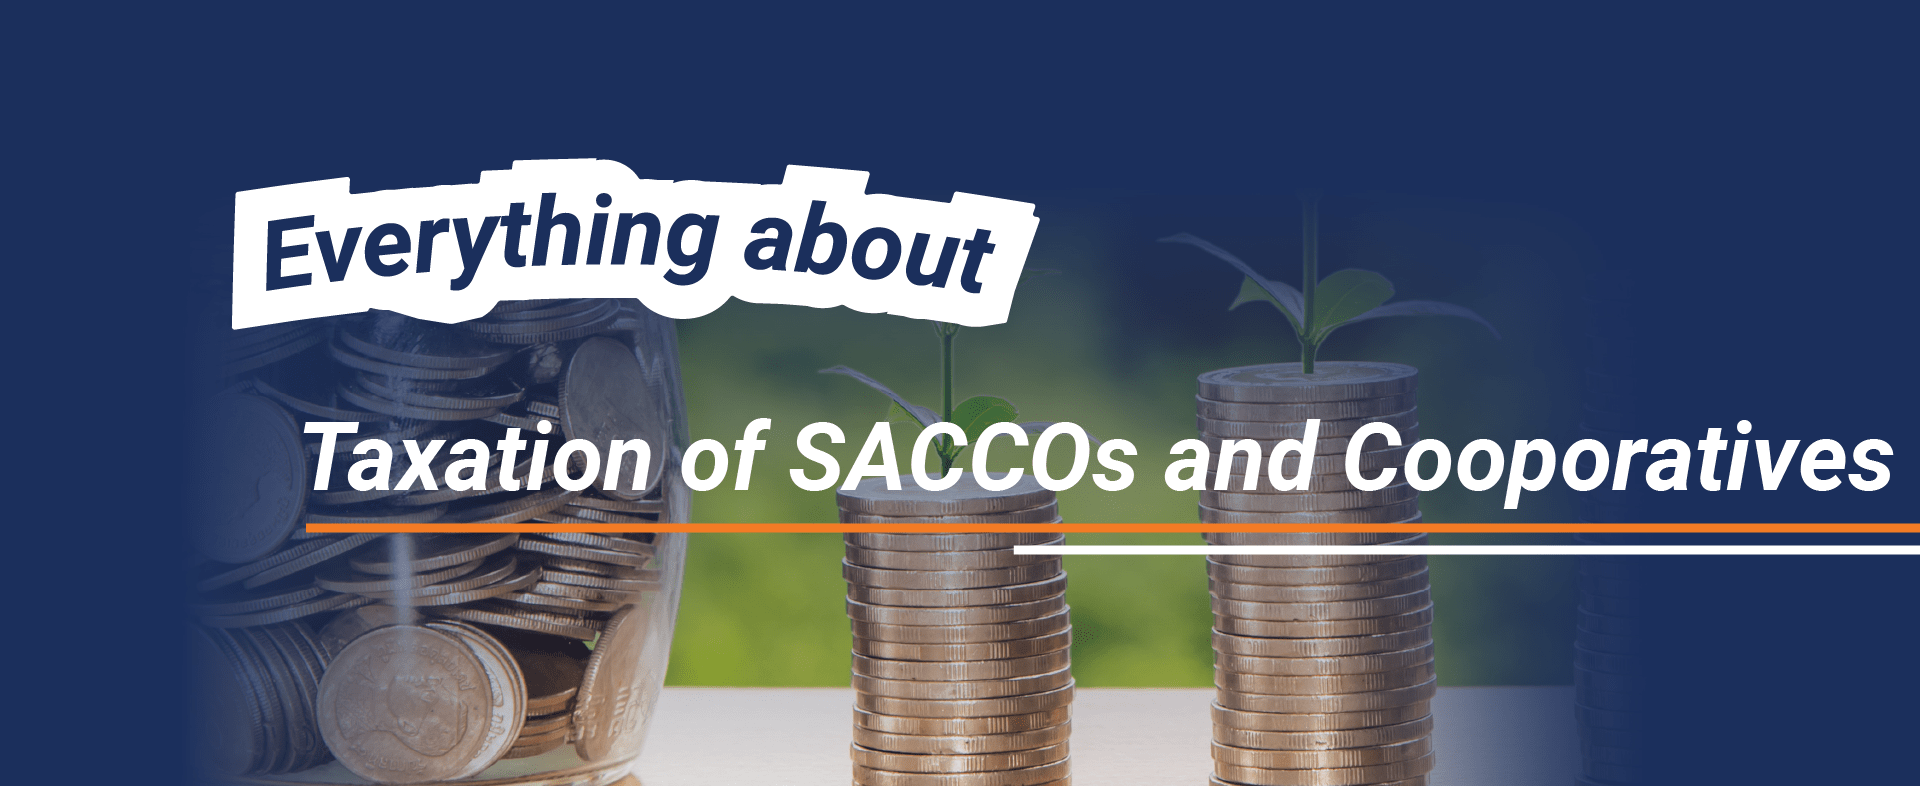 Everything about Taxation of SACCOs and Cooperatives.